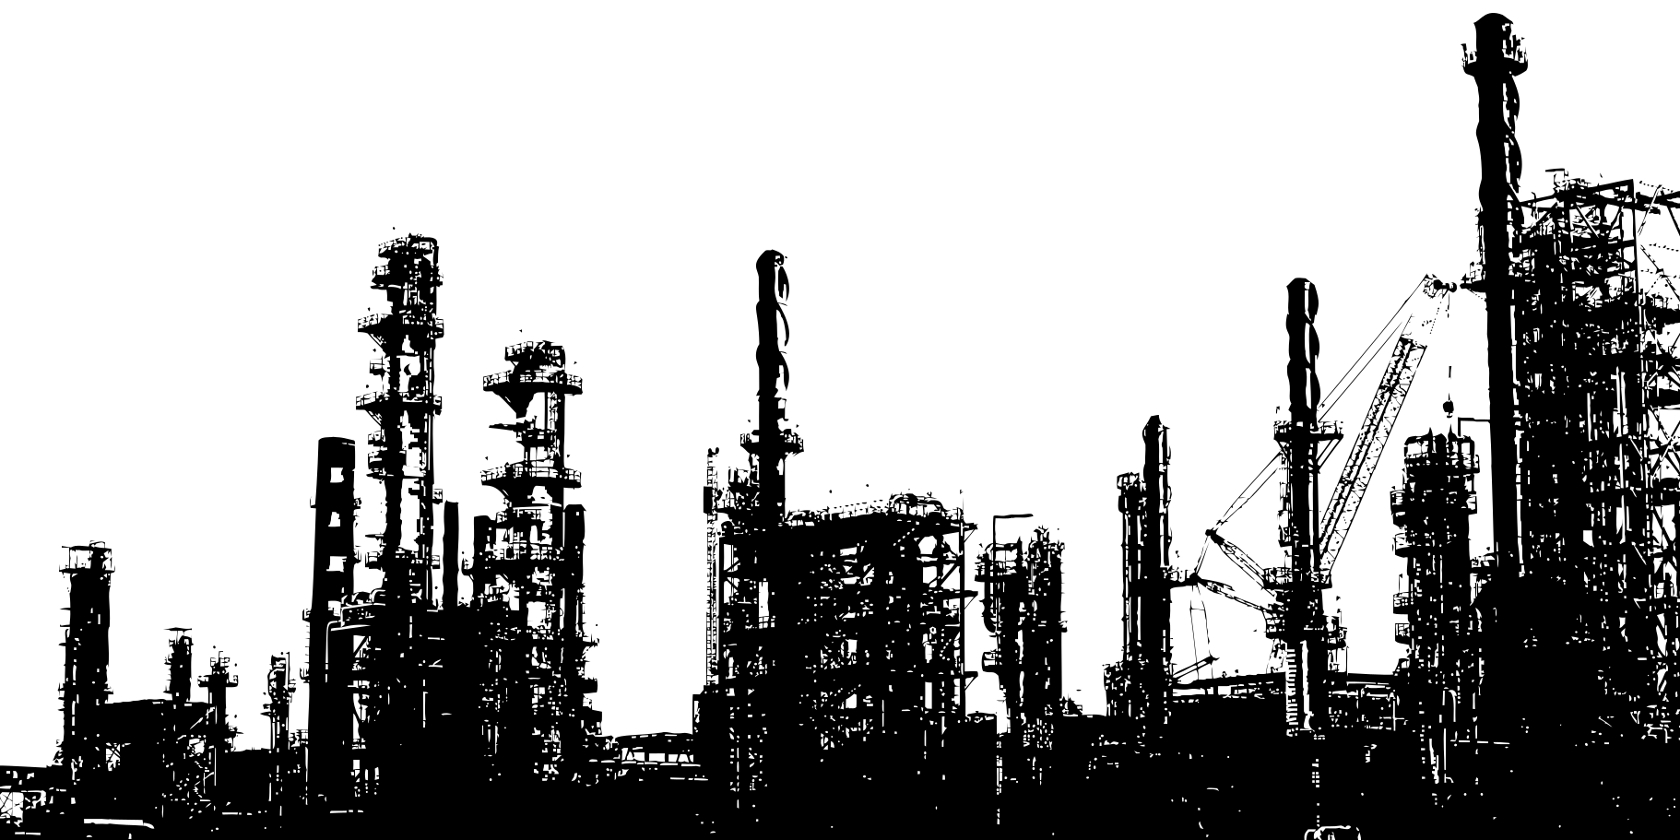 Column: New Treatment Technologies Set to Make Japan's Petrochemical Plants More Competitive